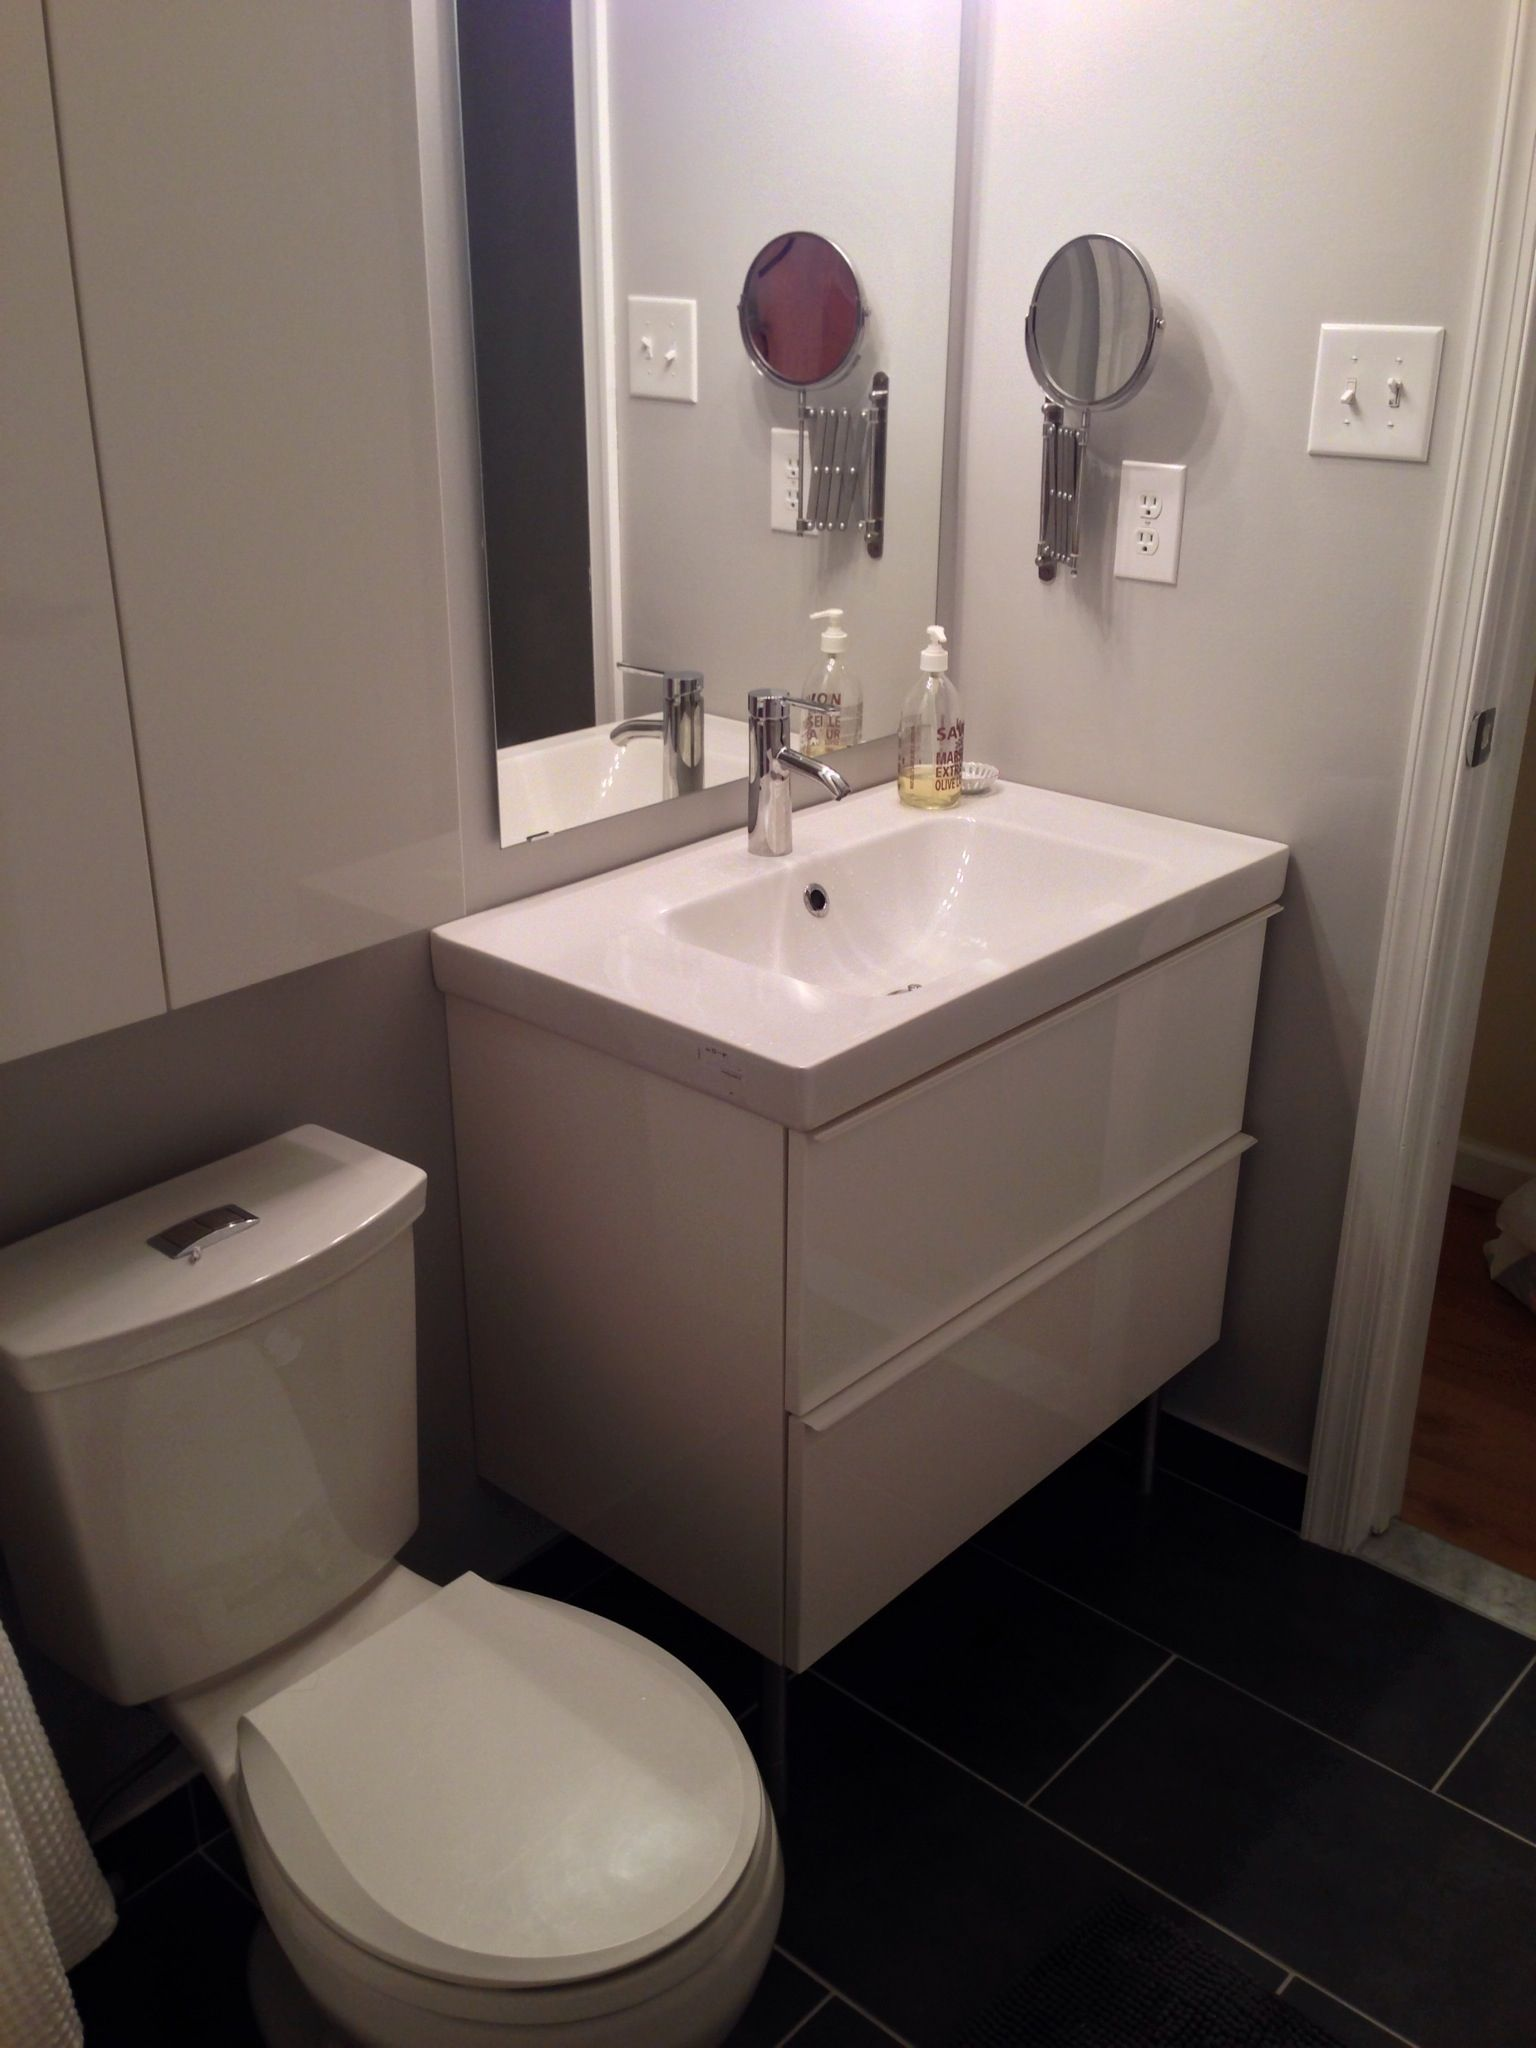 inspiring ikea bathroom vanity with sink ideas fascinating white floating ikea bathroom vanity with single sink and cabinet over toilet in small space - Ikea Bathroom Vanity